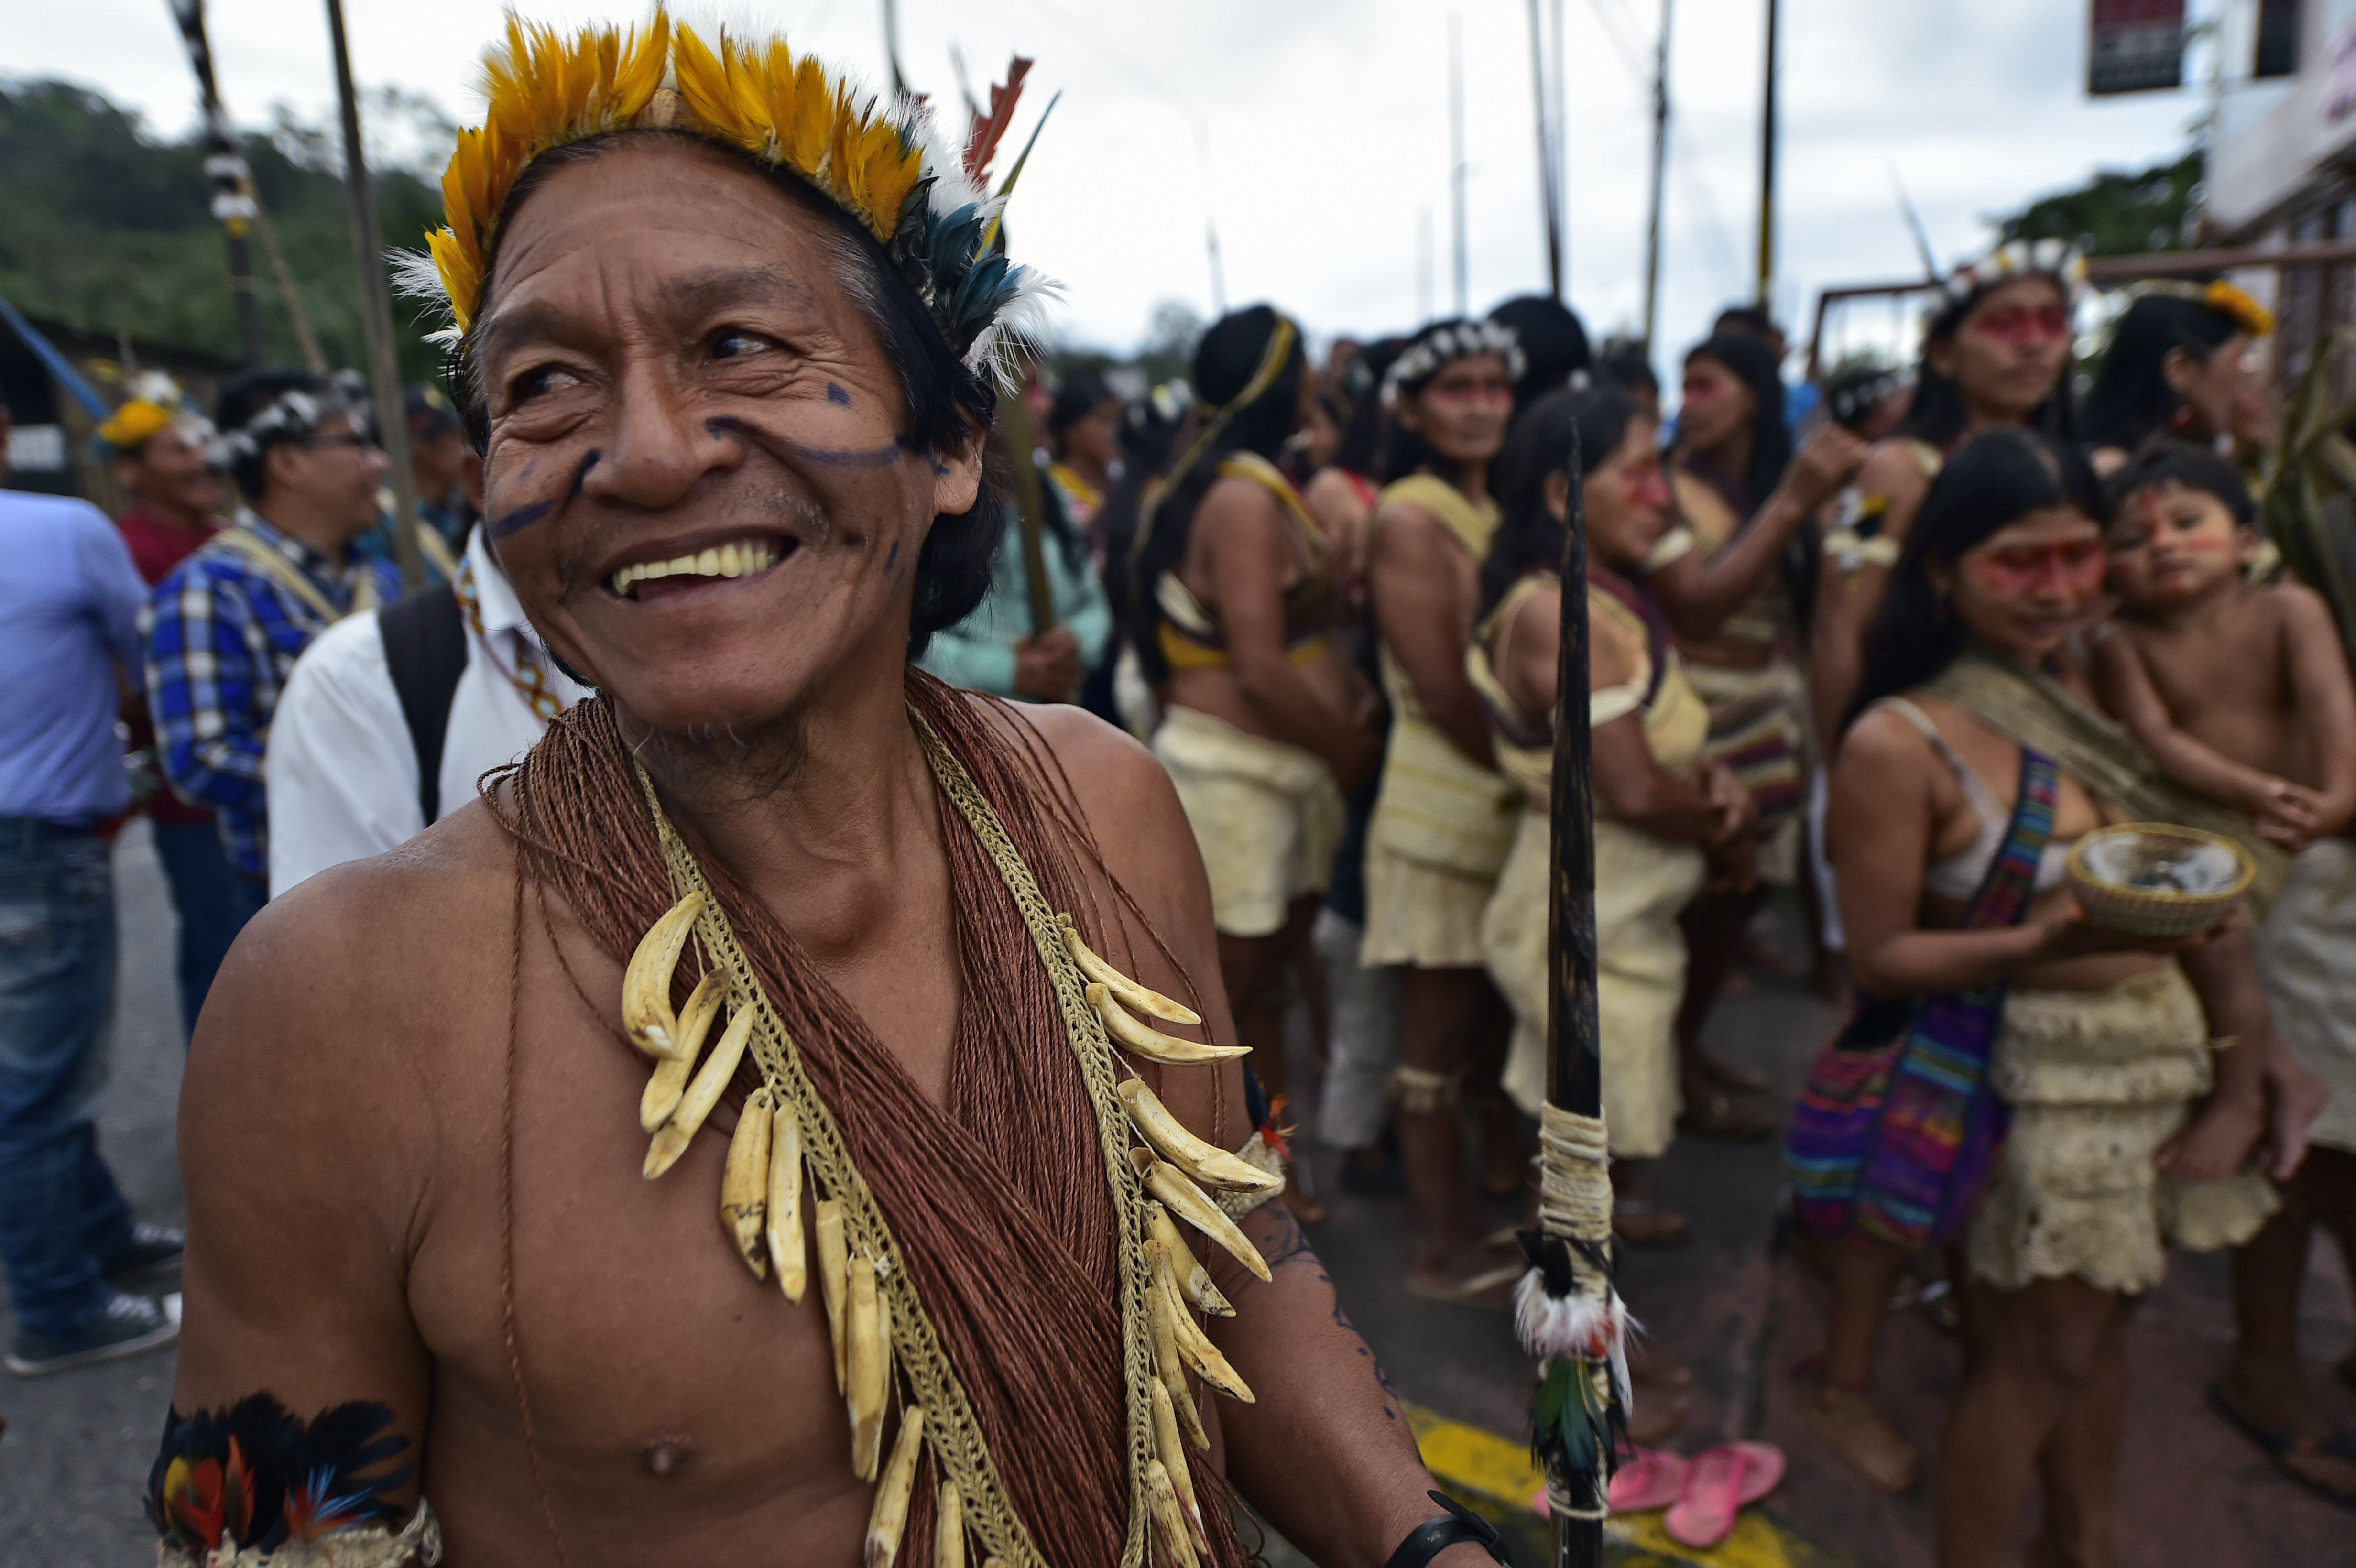 Waorani indigenous people march to demand the non-exploitation of oil in their territory, in Puyo, Ecuador, April 11, 2019. Indigenous people from 16 Waorani communities marched to the provincial court of Pastaza province to attend a protection actio...